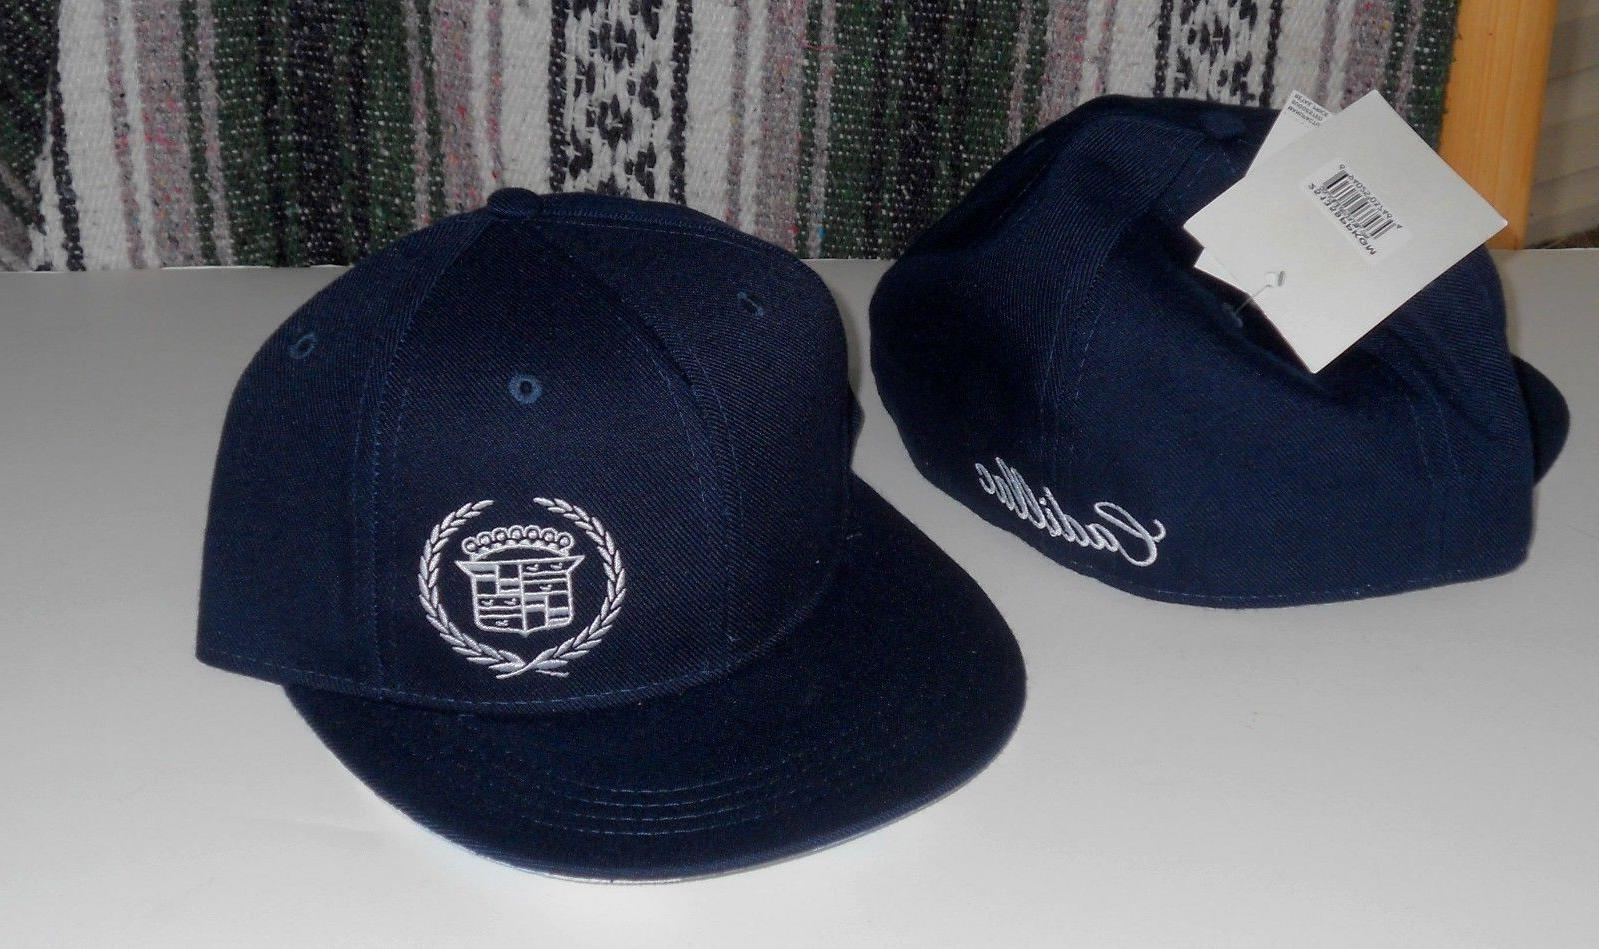 cadillac navy blue fitted hat baseball cap